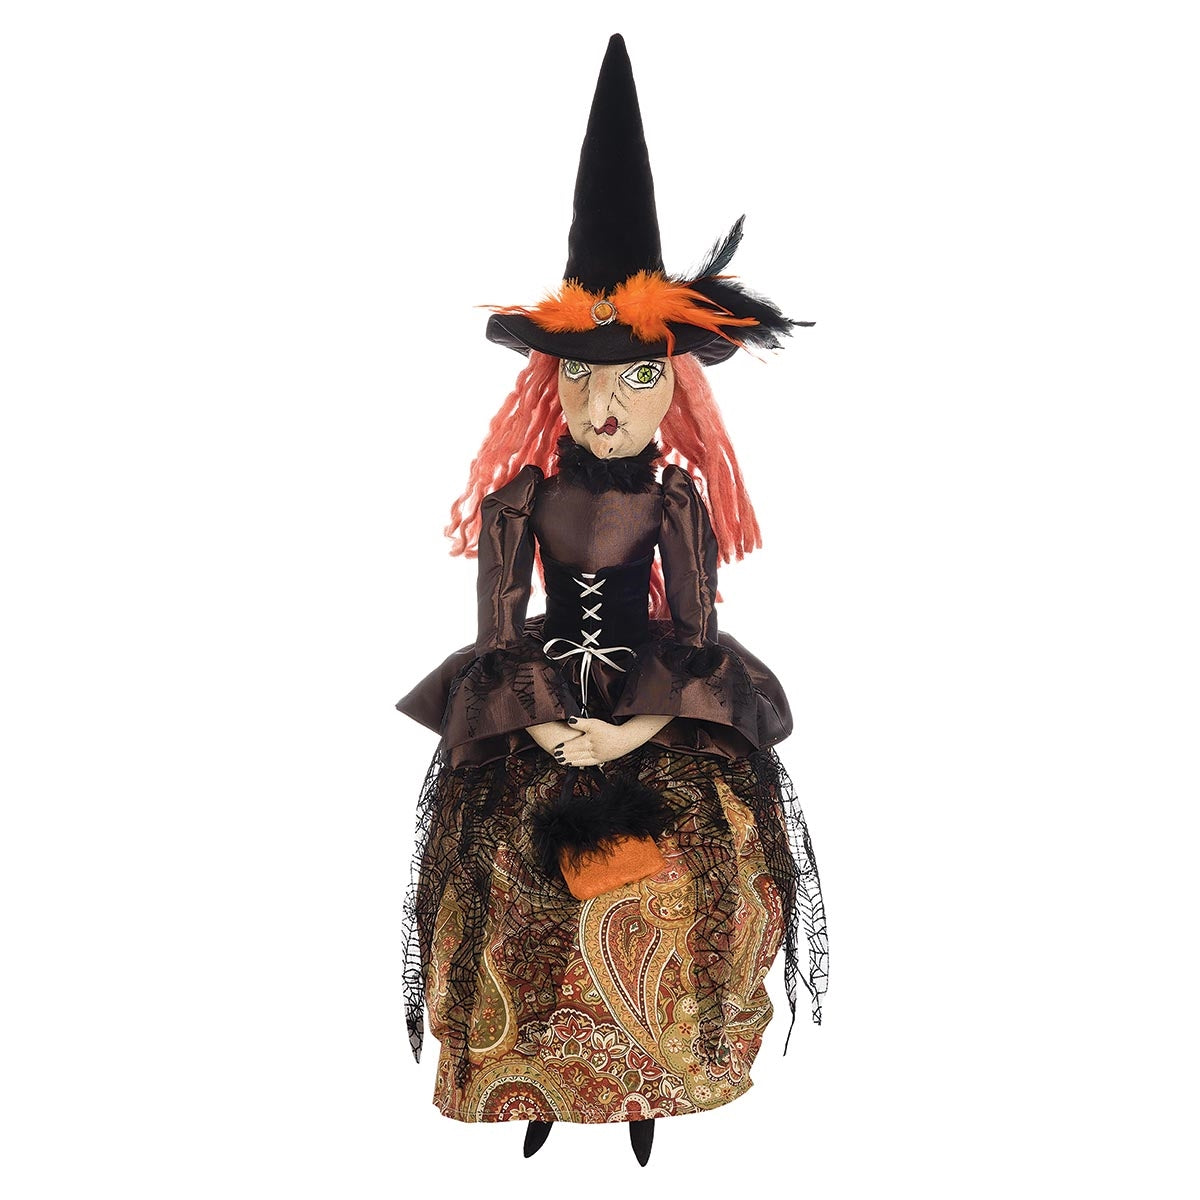 Elfreda Witch Doll - Joe Spencer Halloween 2019